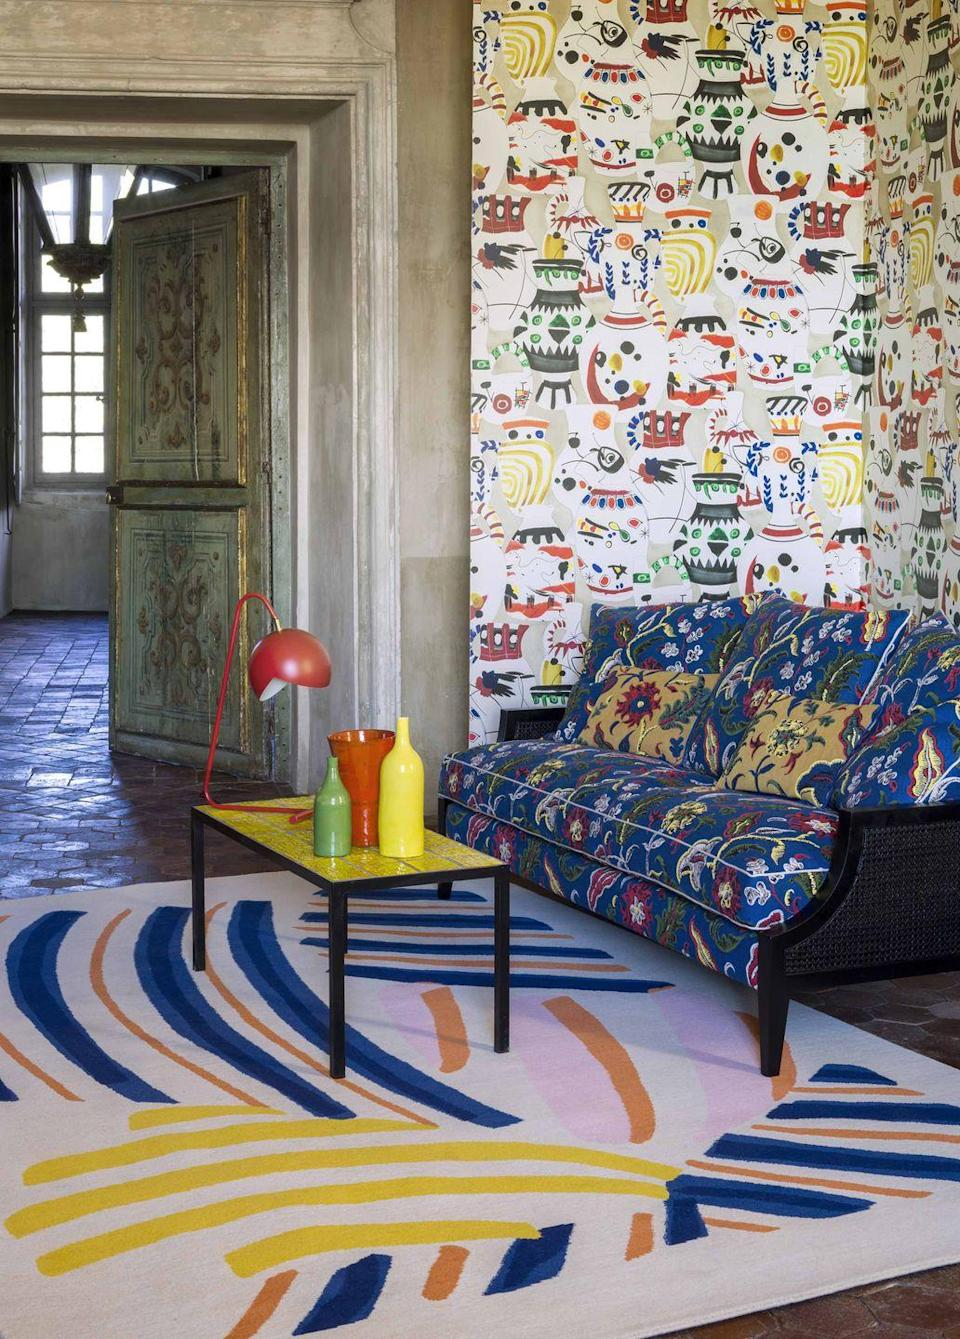 """<p>Transport yourself to warmer climes with the 'Eternel Été' wallpaper and the 'Joie De Vivre' fabric collections from Pierre Frey. Each design is inspired by the colours, artists and traditions of Provence. Pictured here is 'Vence' wallpaper, a sofa upholstered in 'Catherine' jacquard fabric and the 'Parasol' rug. From £75 per metre, <a href=""""https://www.pierrefrey.com/en/page/collection-eternel-ete"""" rel=""""nofollow noopener"""" target=""""_blank"""" data-ylk=""""slk:pierrefrey.com"""" class=""""link rapid-noclick-resp"""">pierrefrey.com</a></p>"""